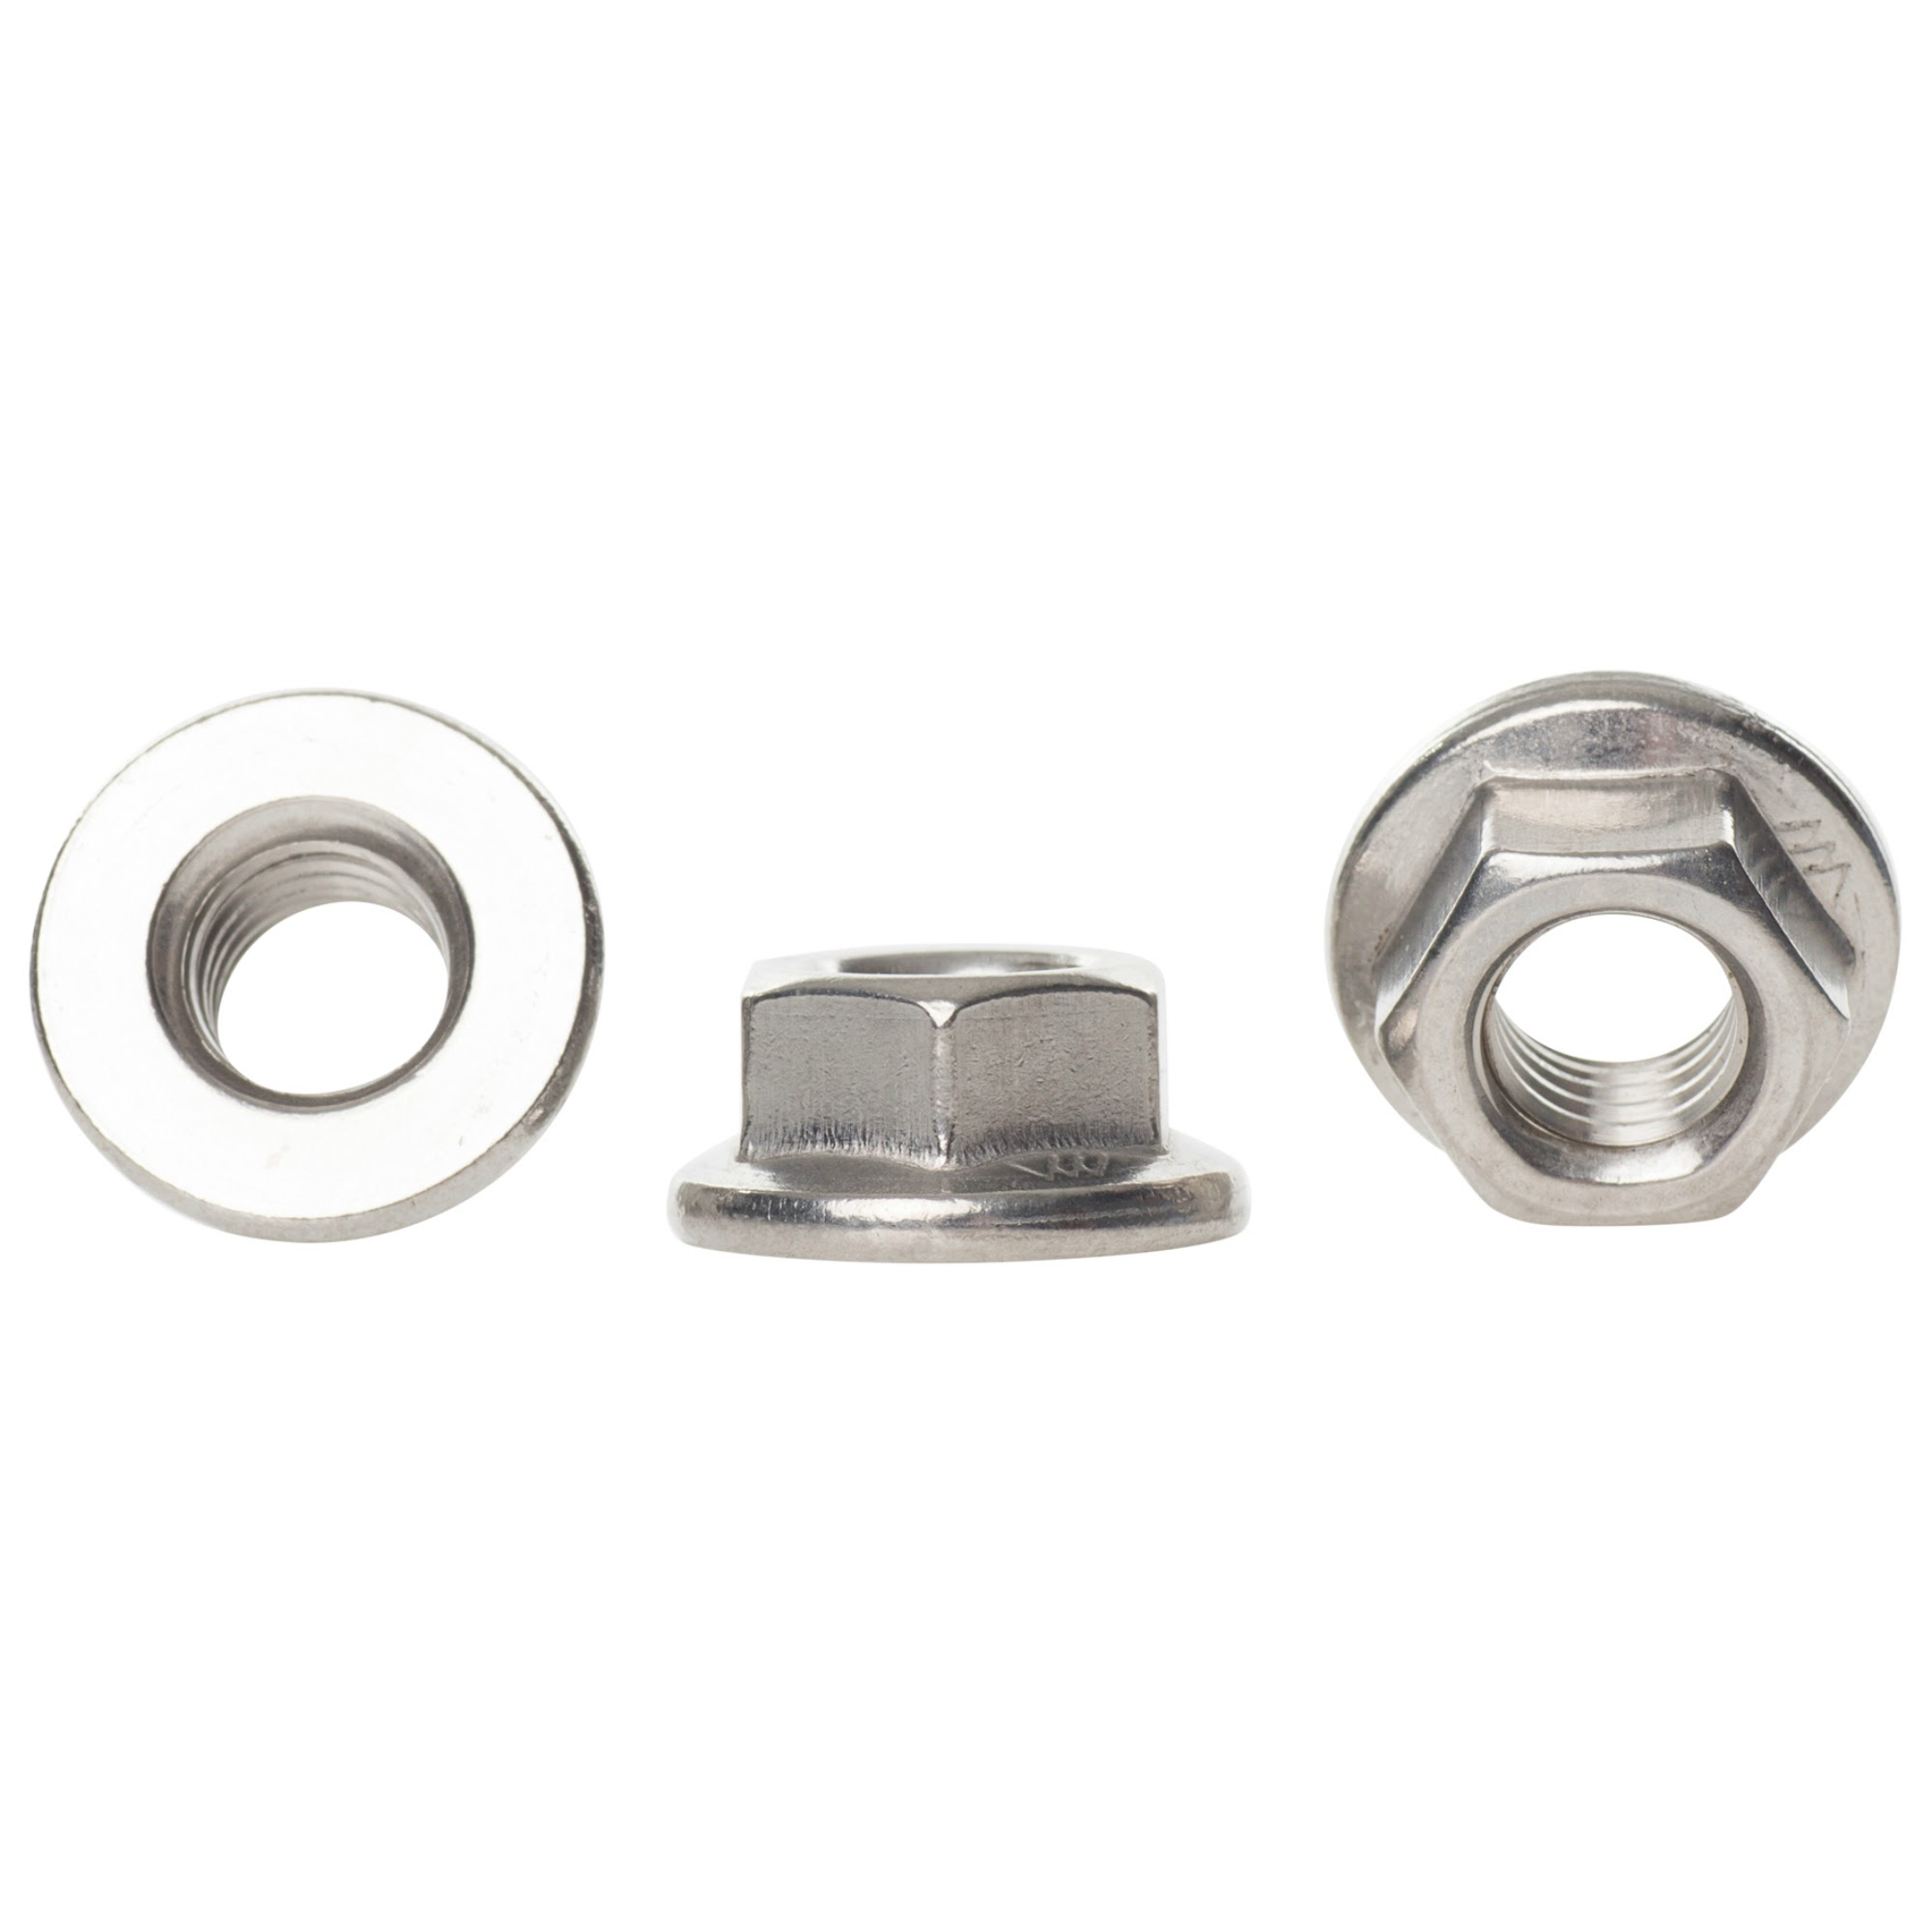 7MM SPANNER 50 PACK OF A2 STAINLESS STEEL M4 HEX FULL NUT